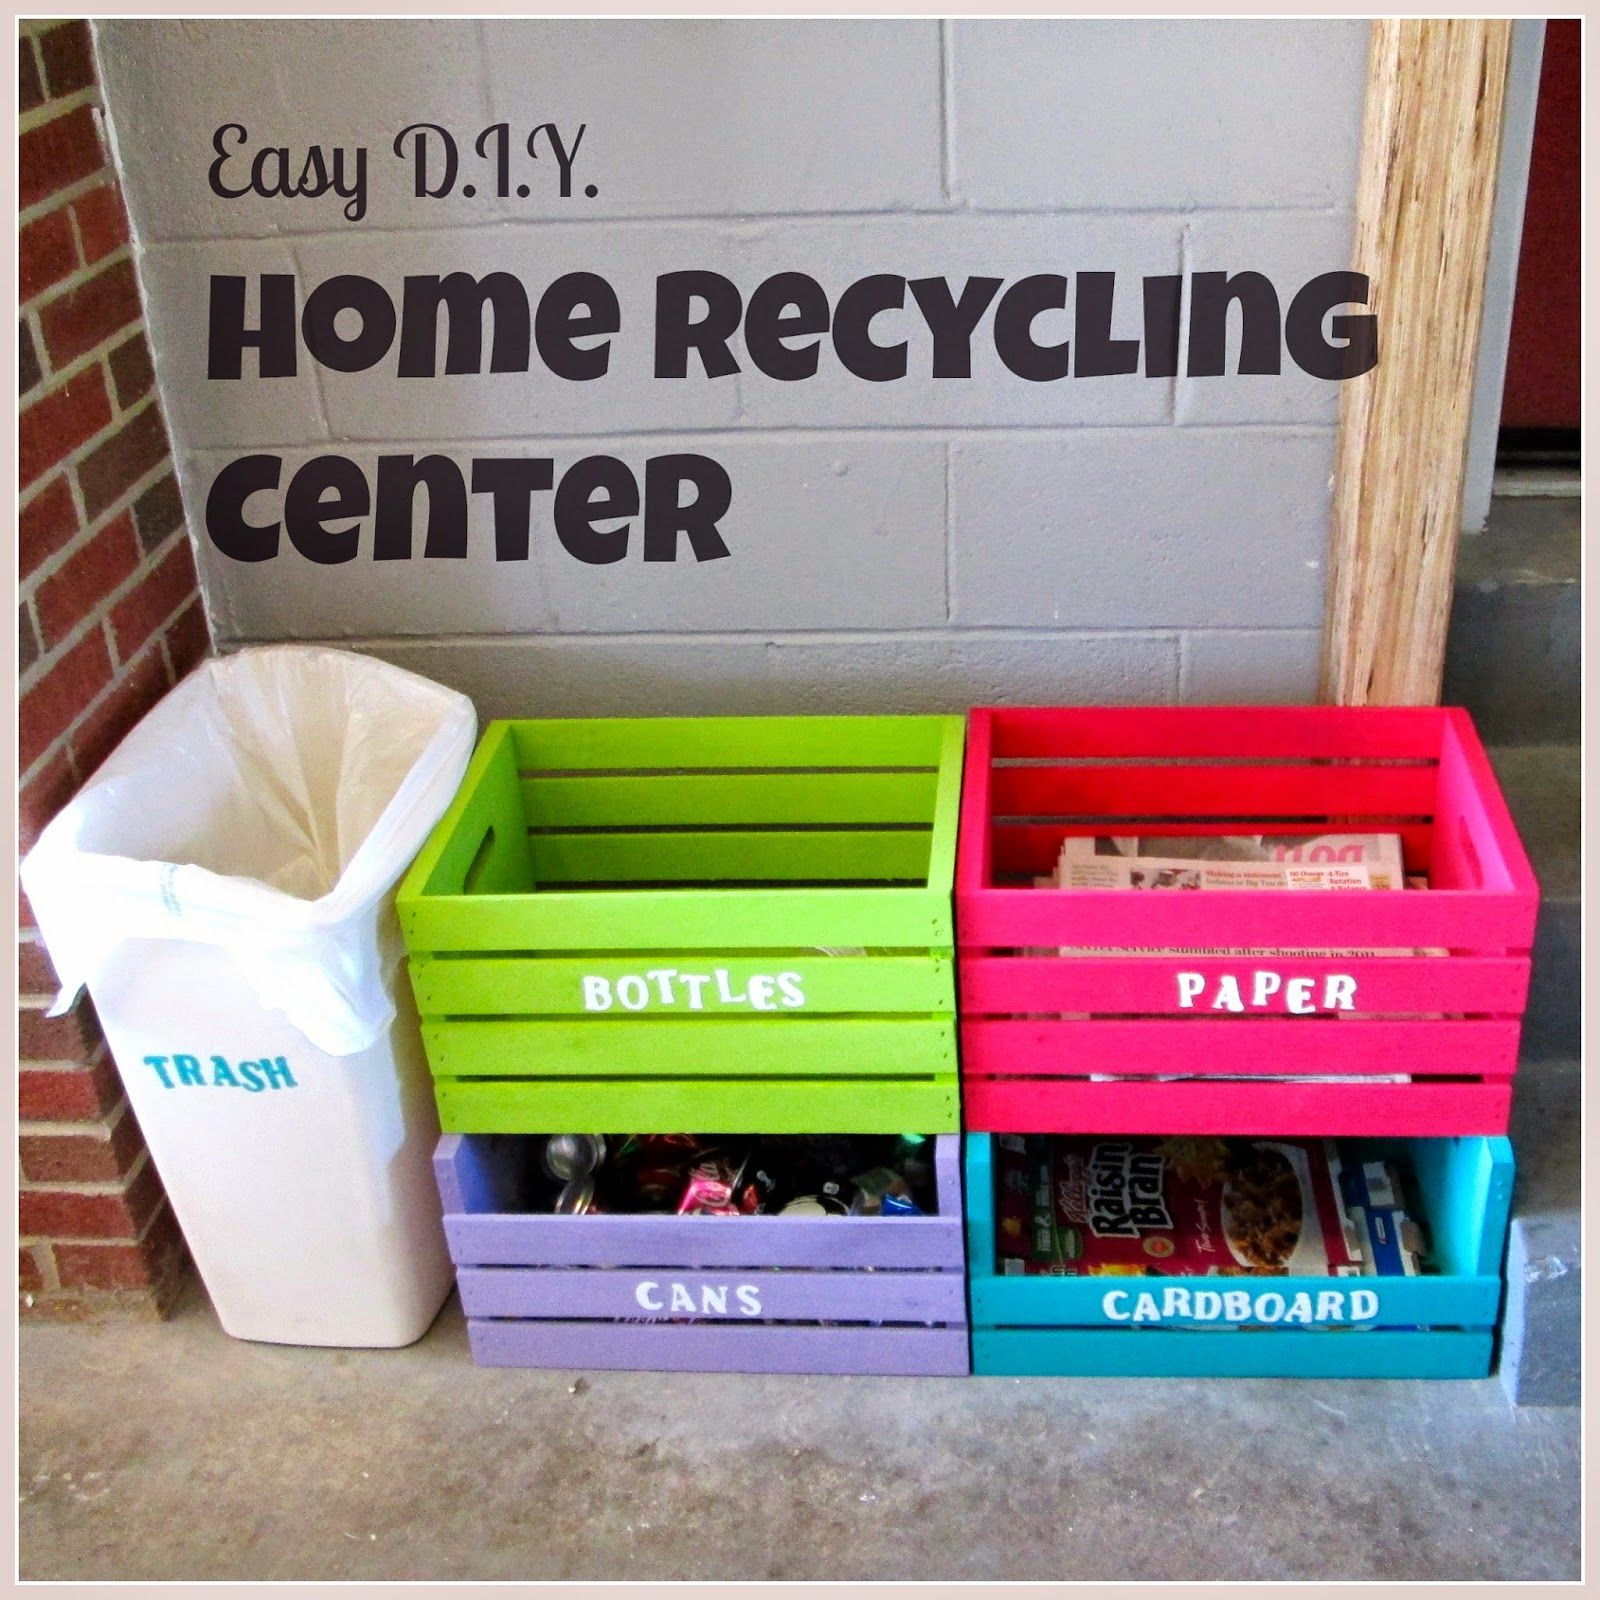 Easy D I Y Home Recycling Center Made From Wooden Crates Bottles Paper Cans Cardboard And Trash